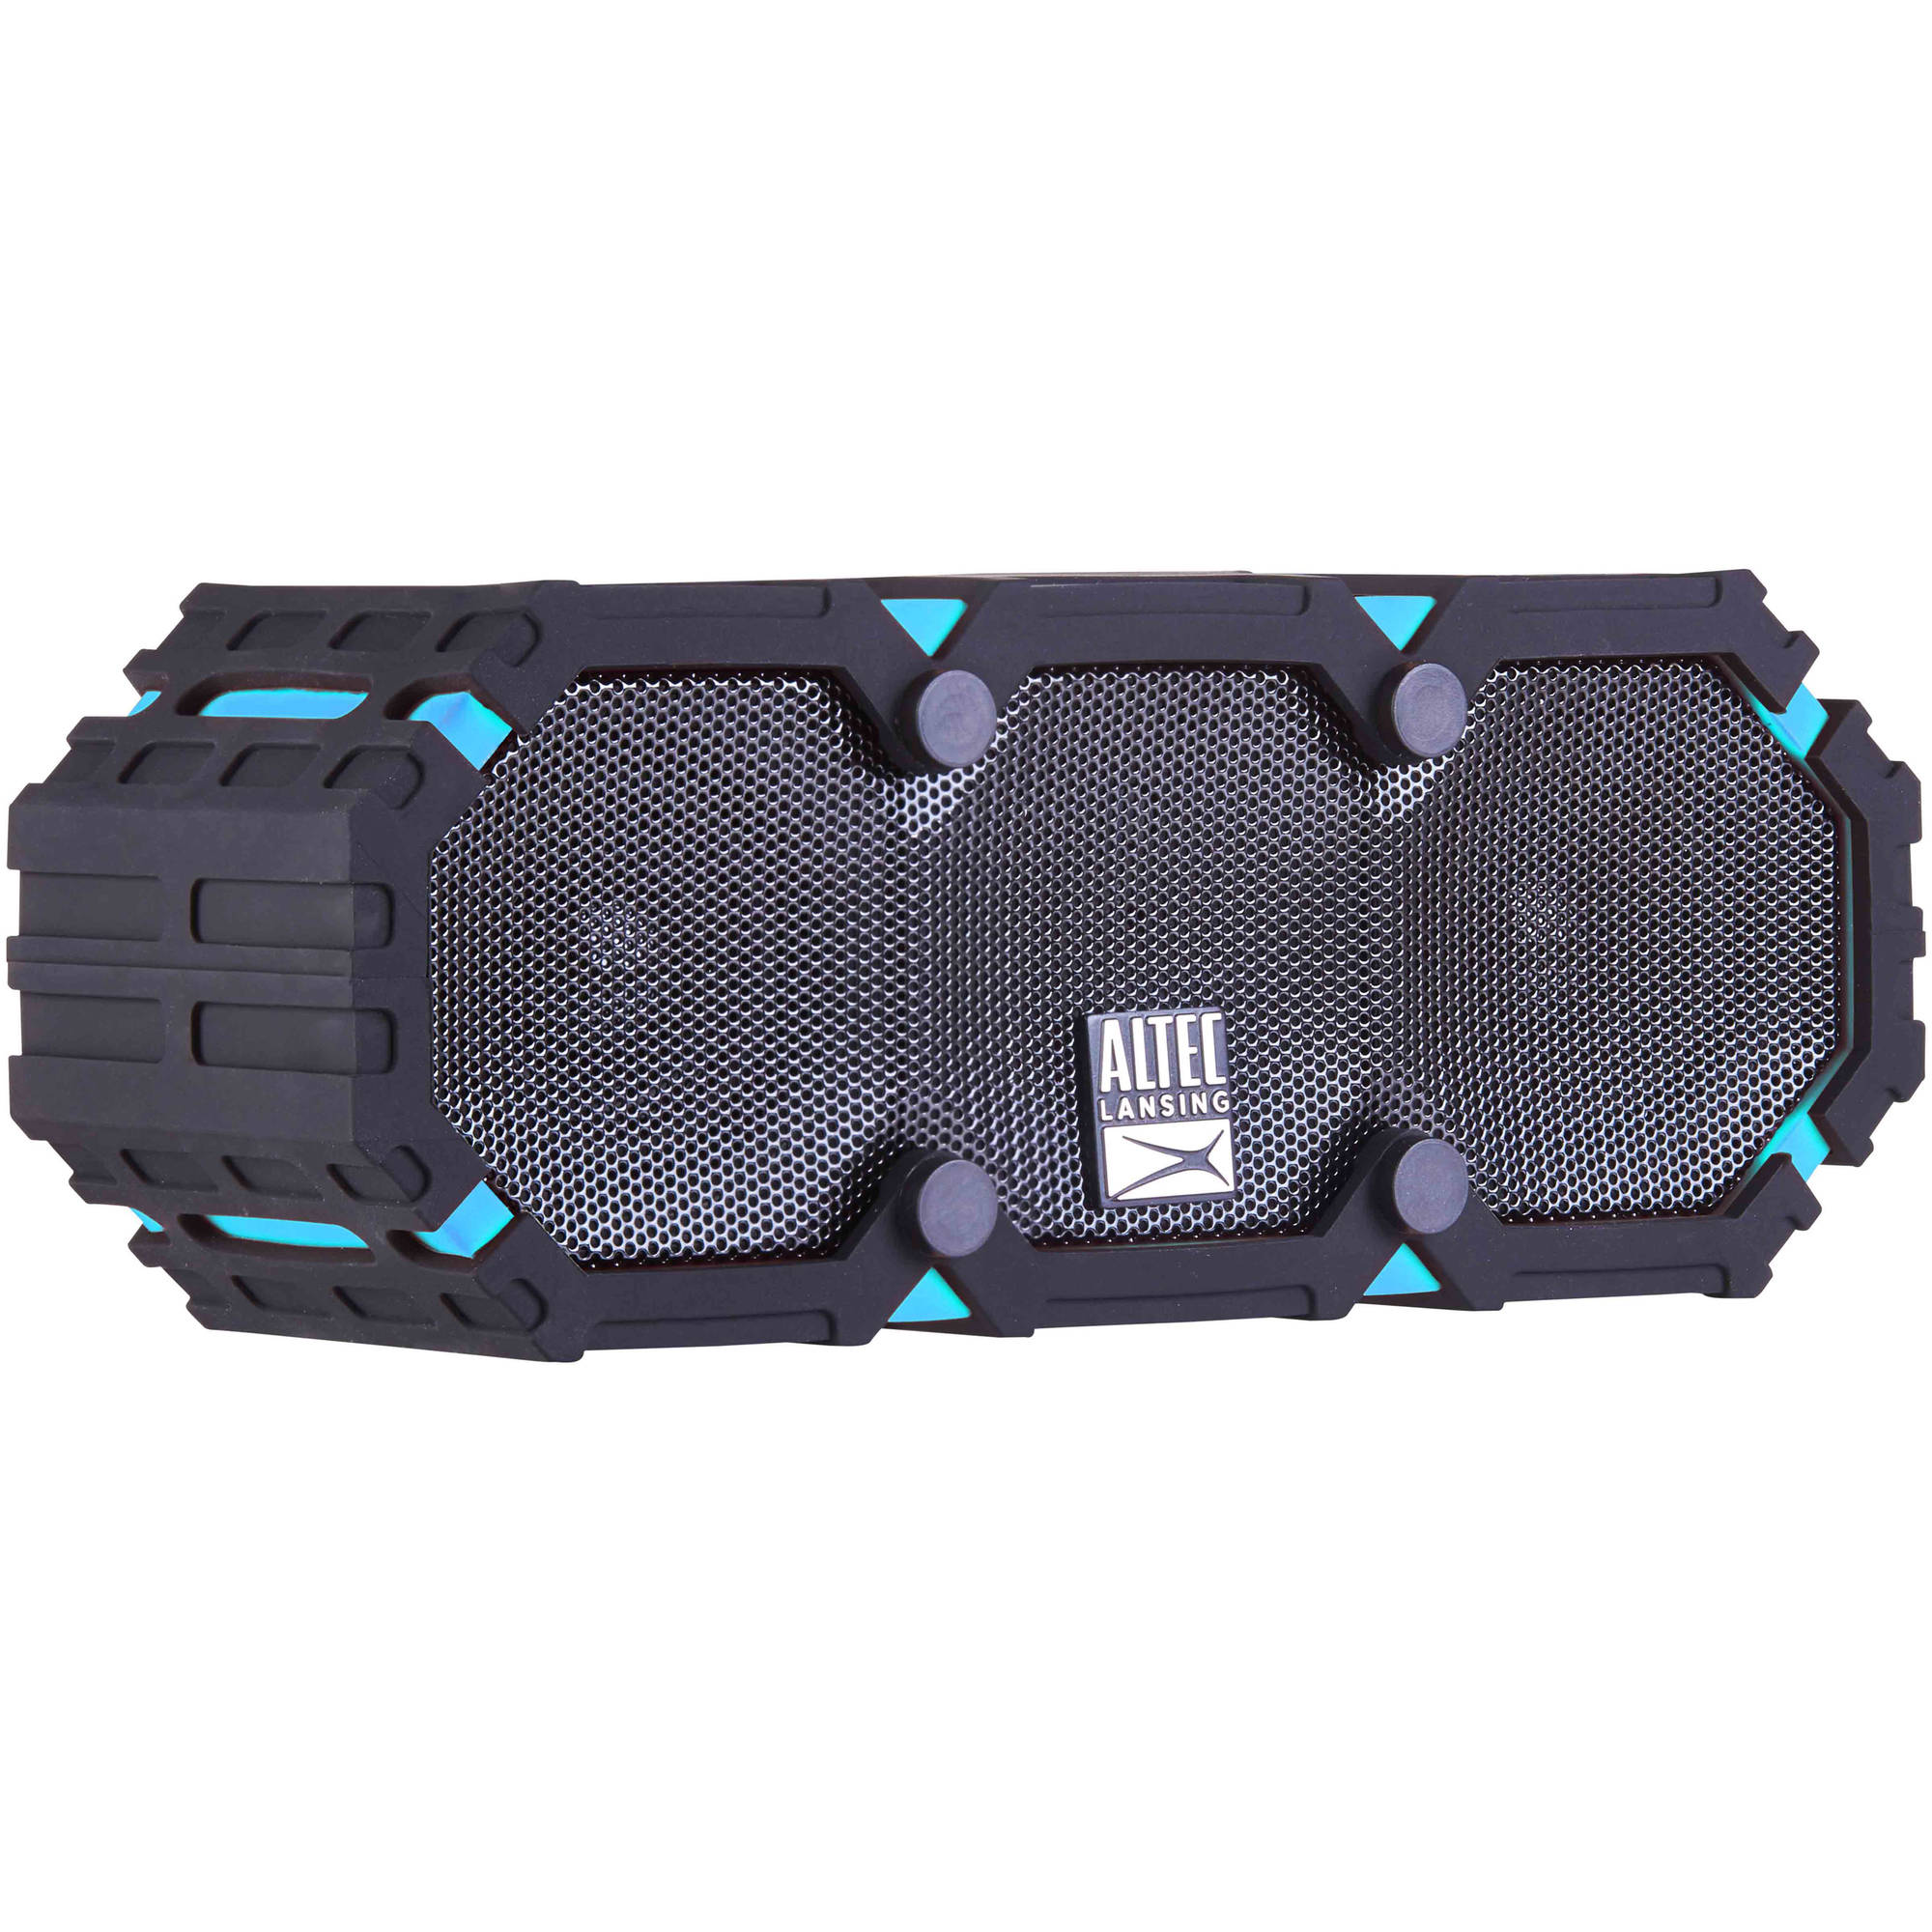 Altec Lansing iMW475 Mini Life Jacket Bluetooth Wireless Speaker